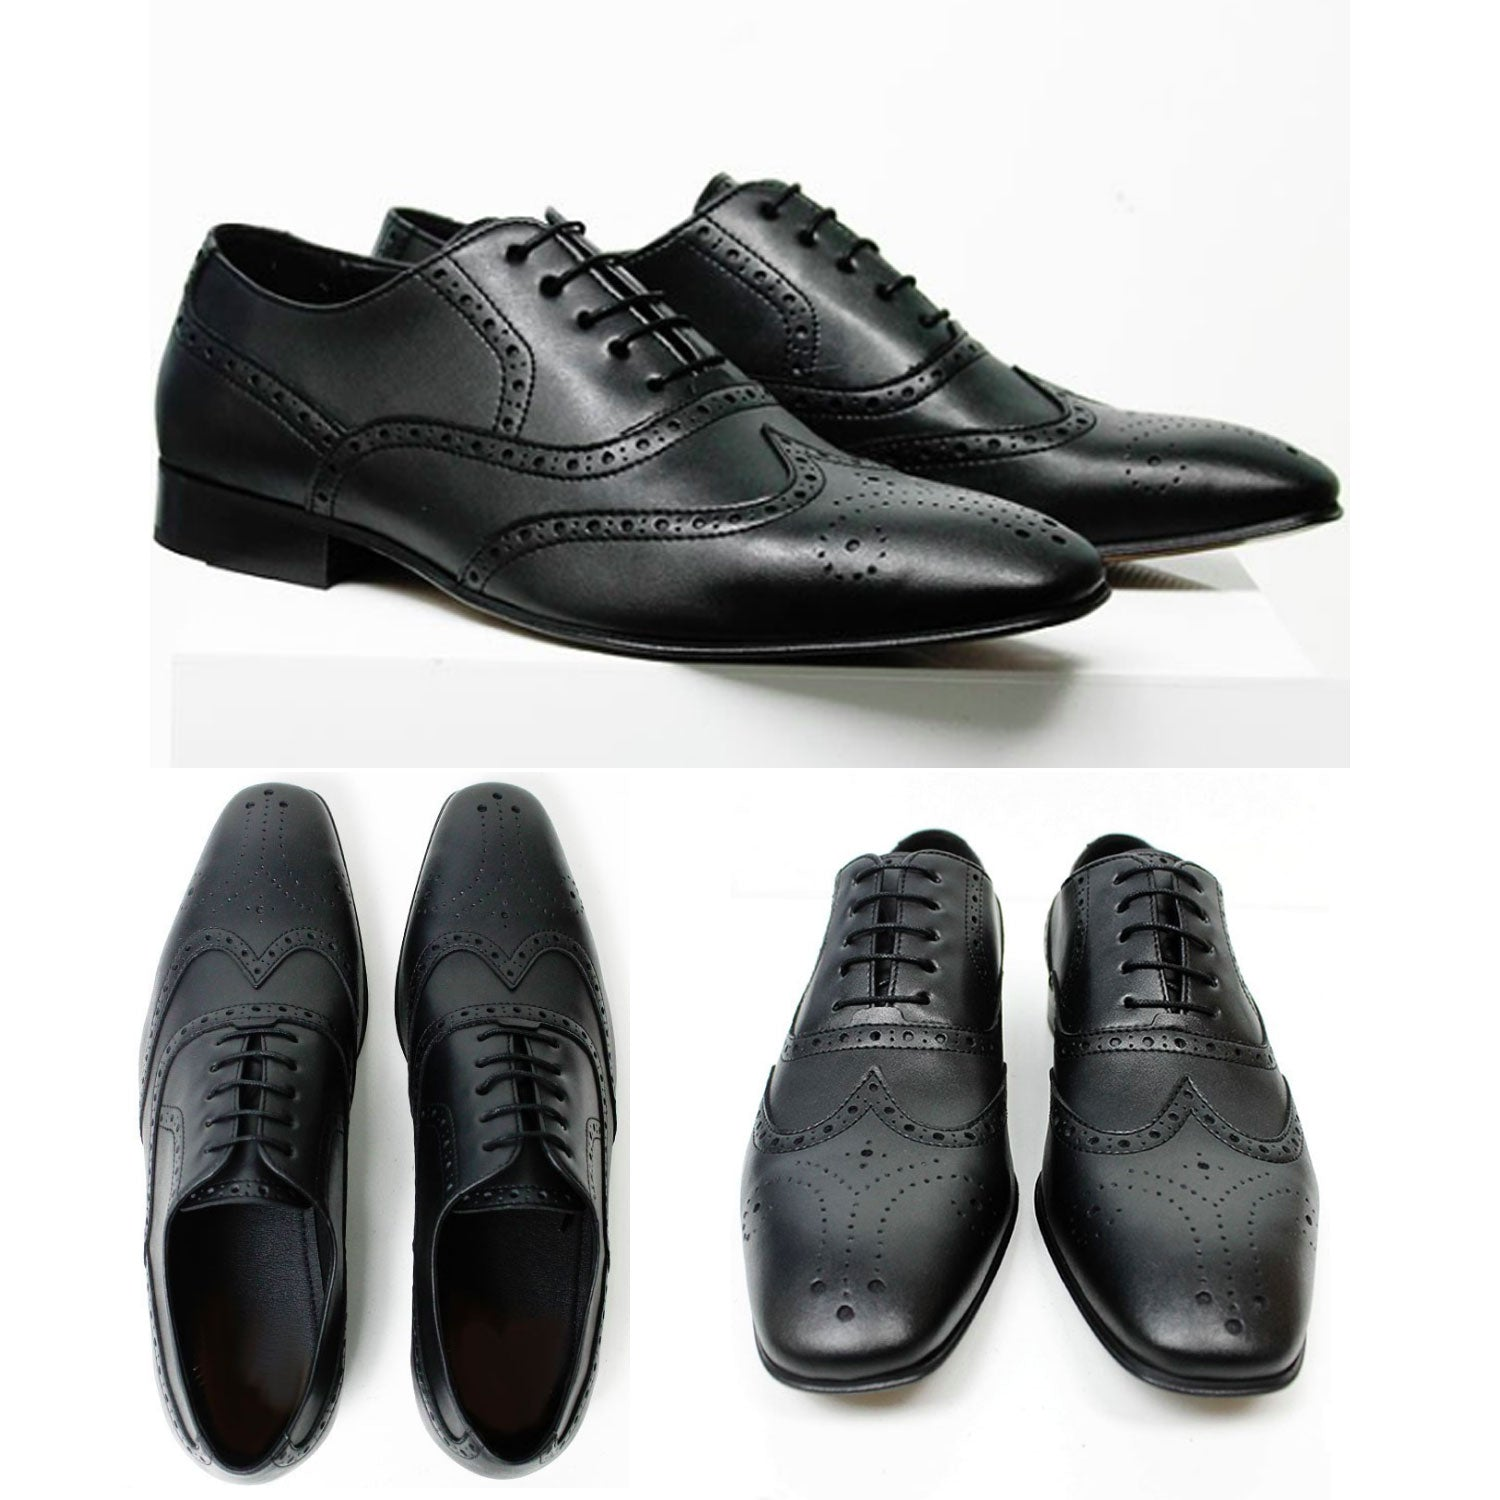 City Wingtip Brogue Oxfords